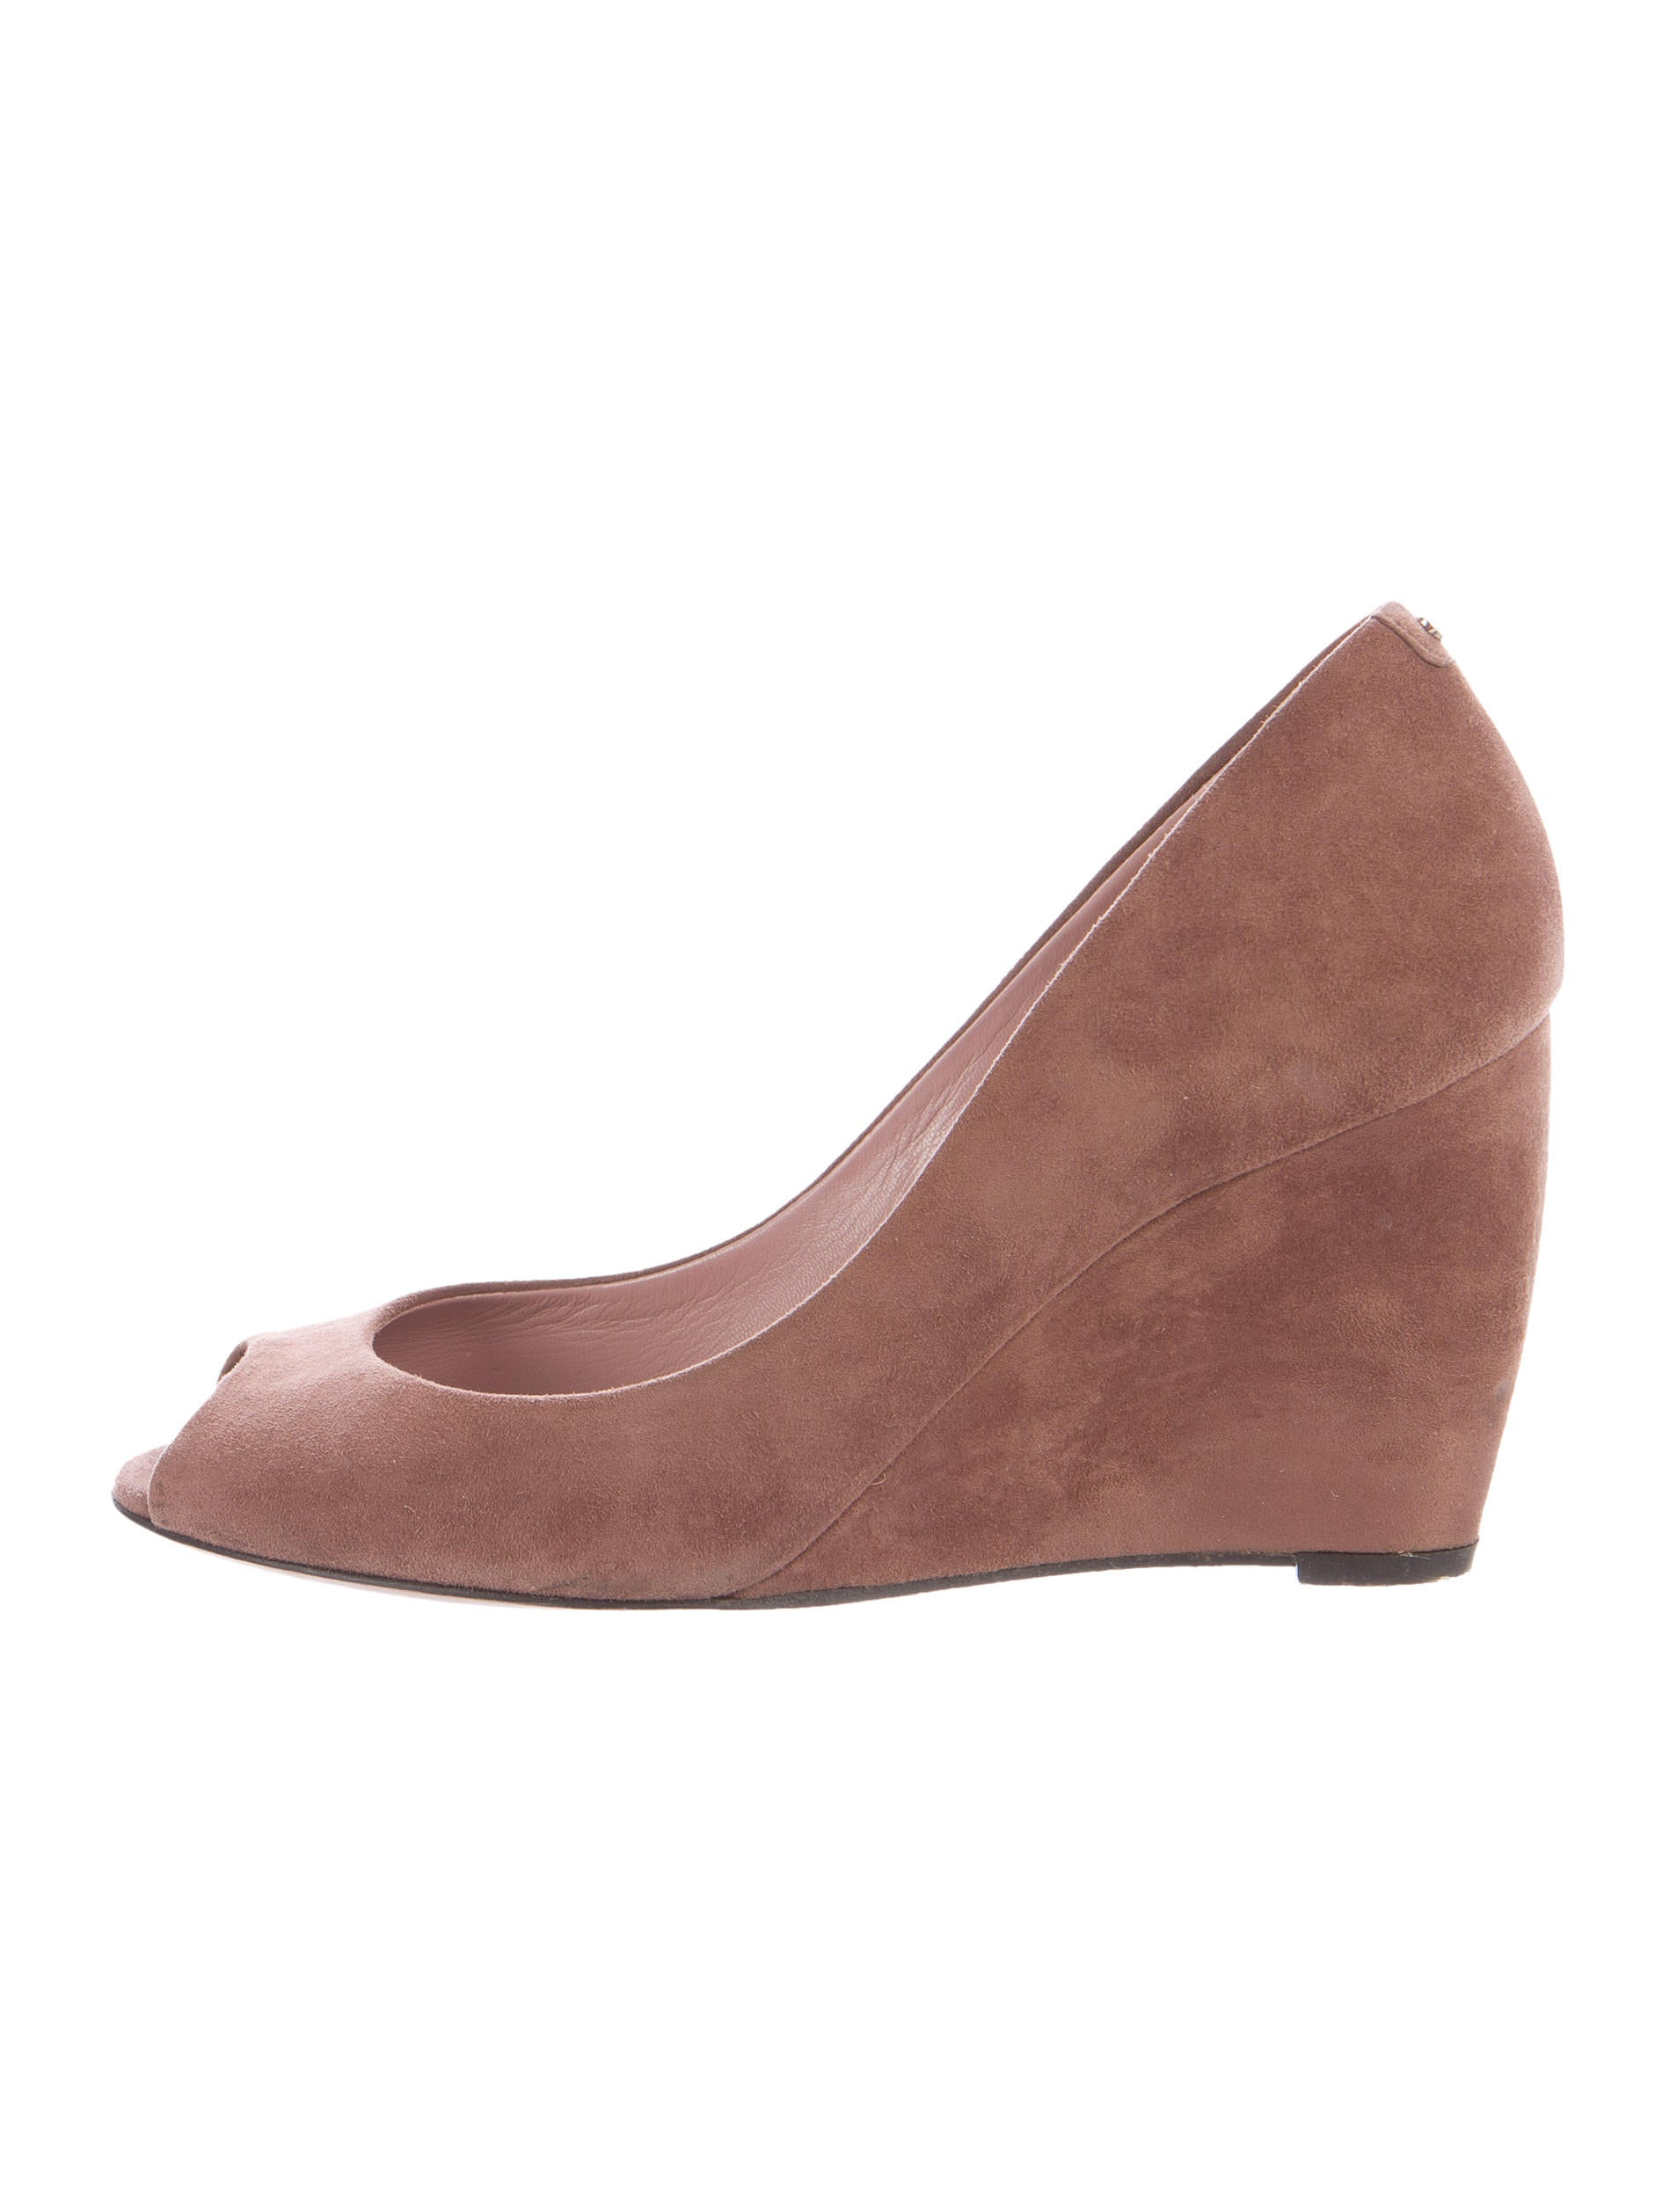 gucci gg suede wedges shoes guc135734 the realreal